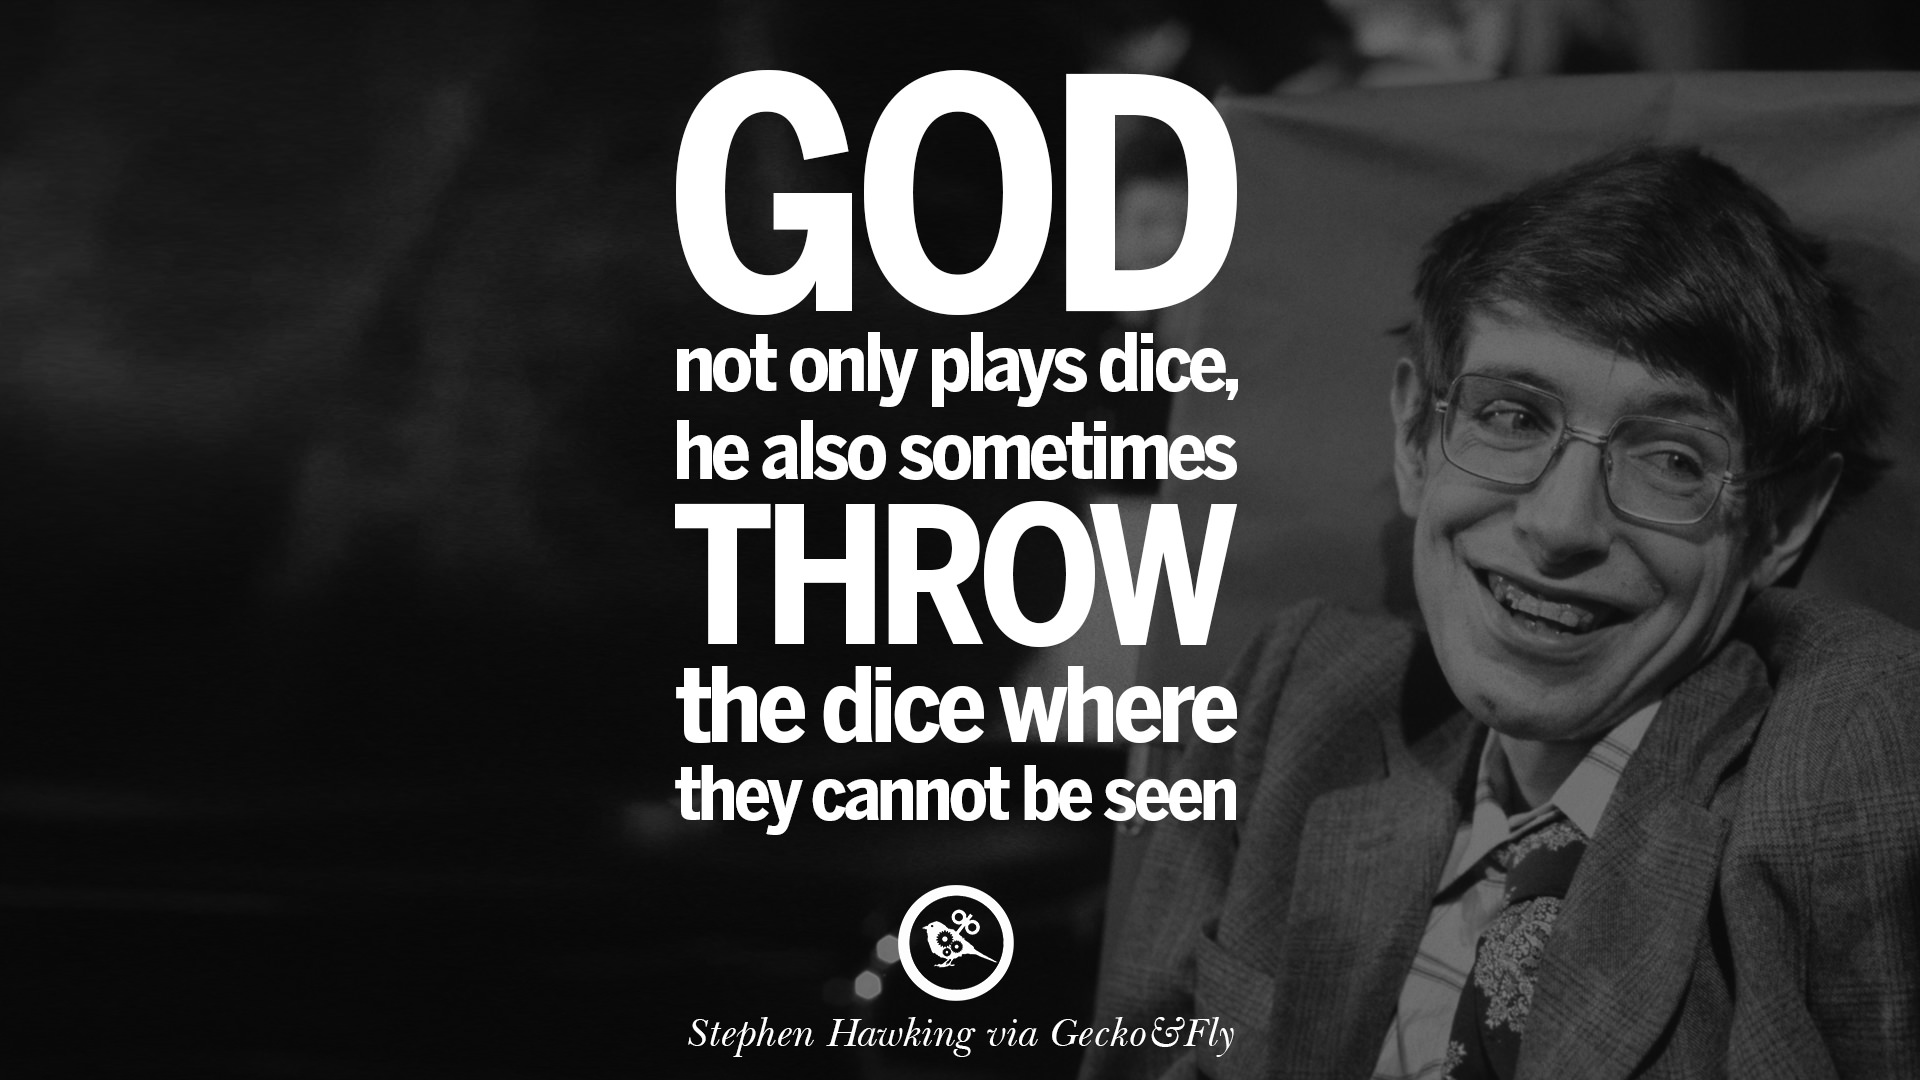 16 Quotes By Stephen Hawking On The Theory Of Everything From God